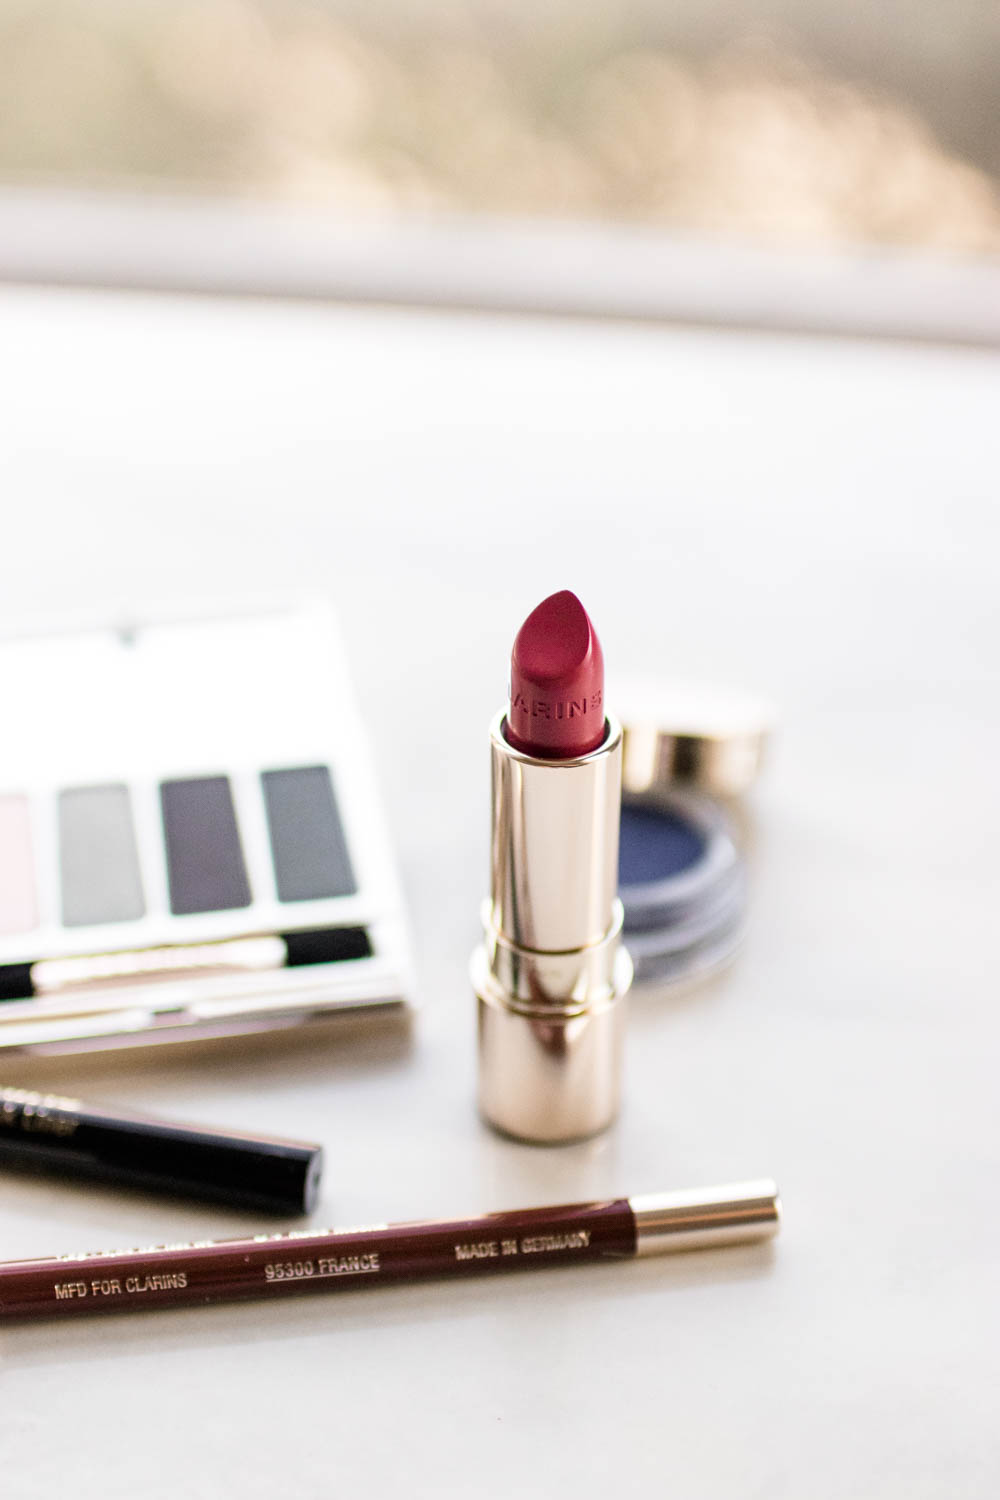 Clarins Colour Definition Fall 2011 Makeup Collection: Clarins Graphik Color Collection Review Swatches